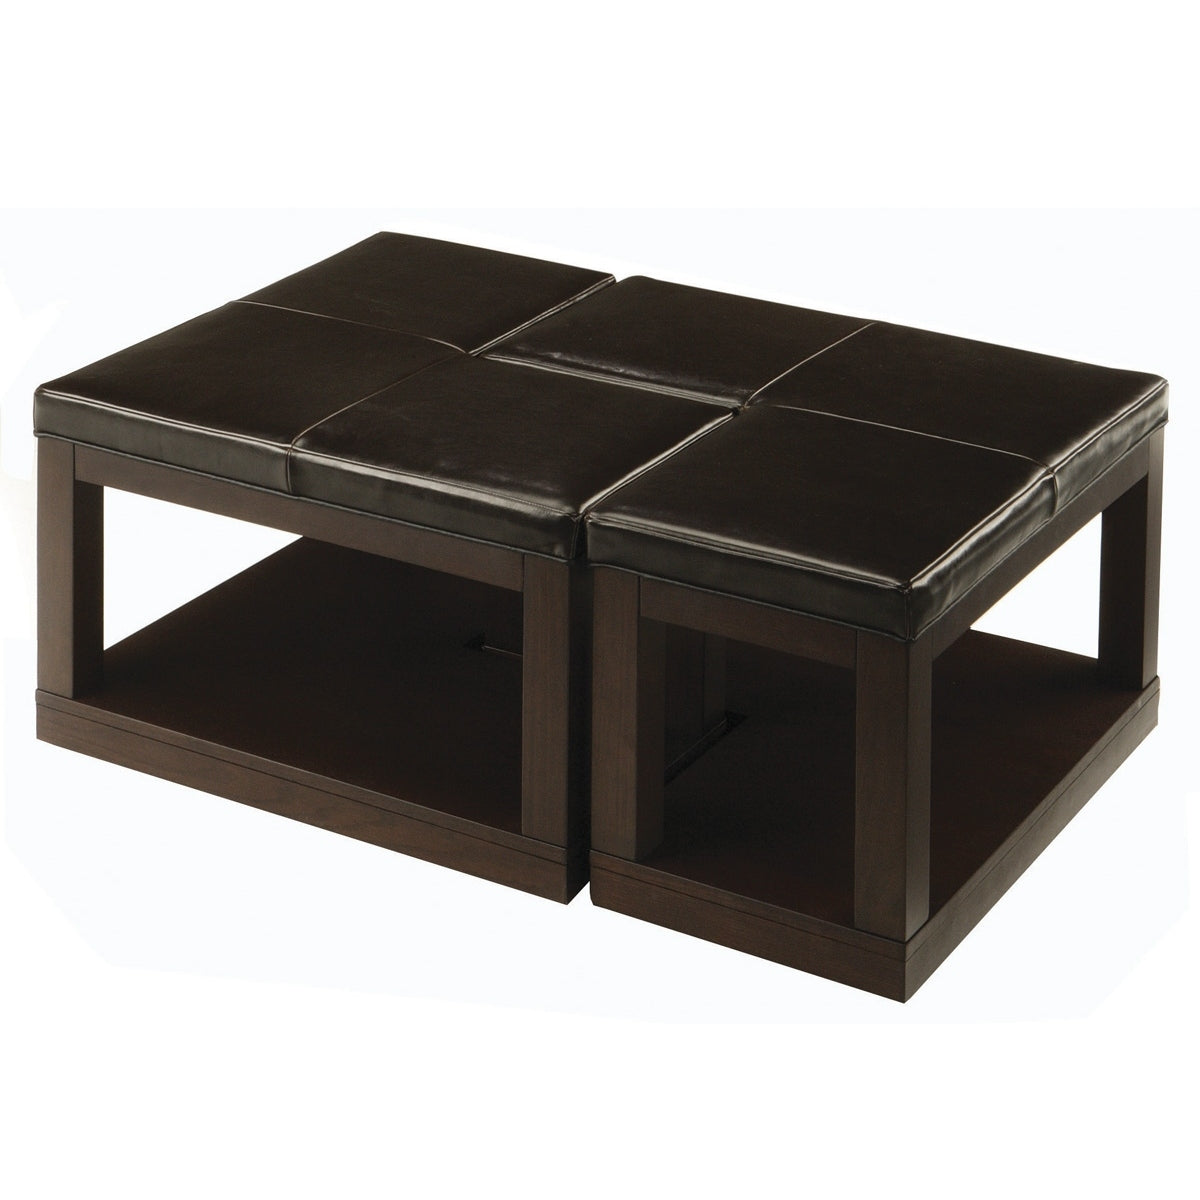 homelegance frisco bay l shaped cocktail table in espresso beyond stores. Black Bedroom Furniture Sets. Home Design Ideas